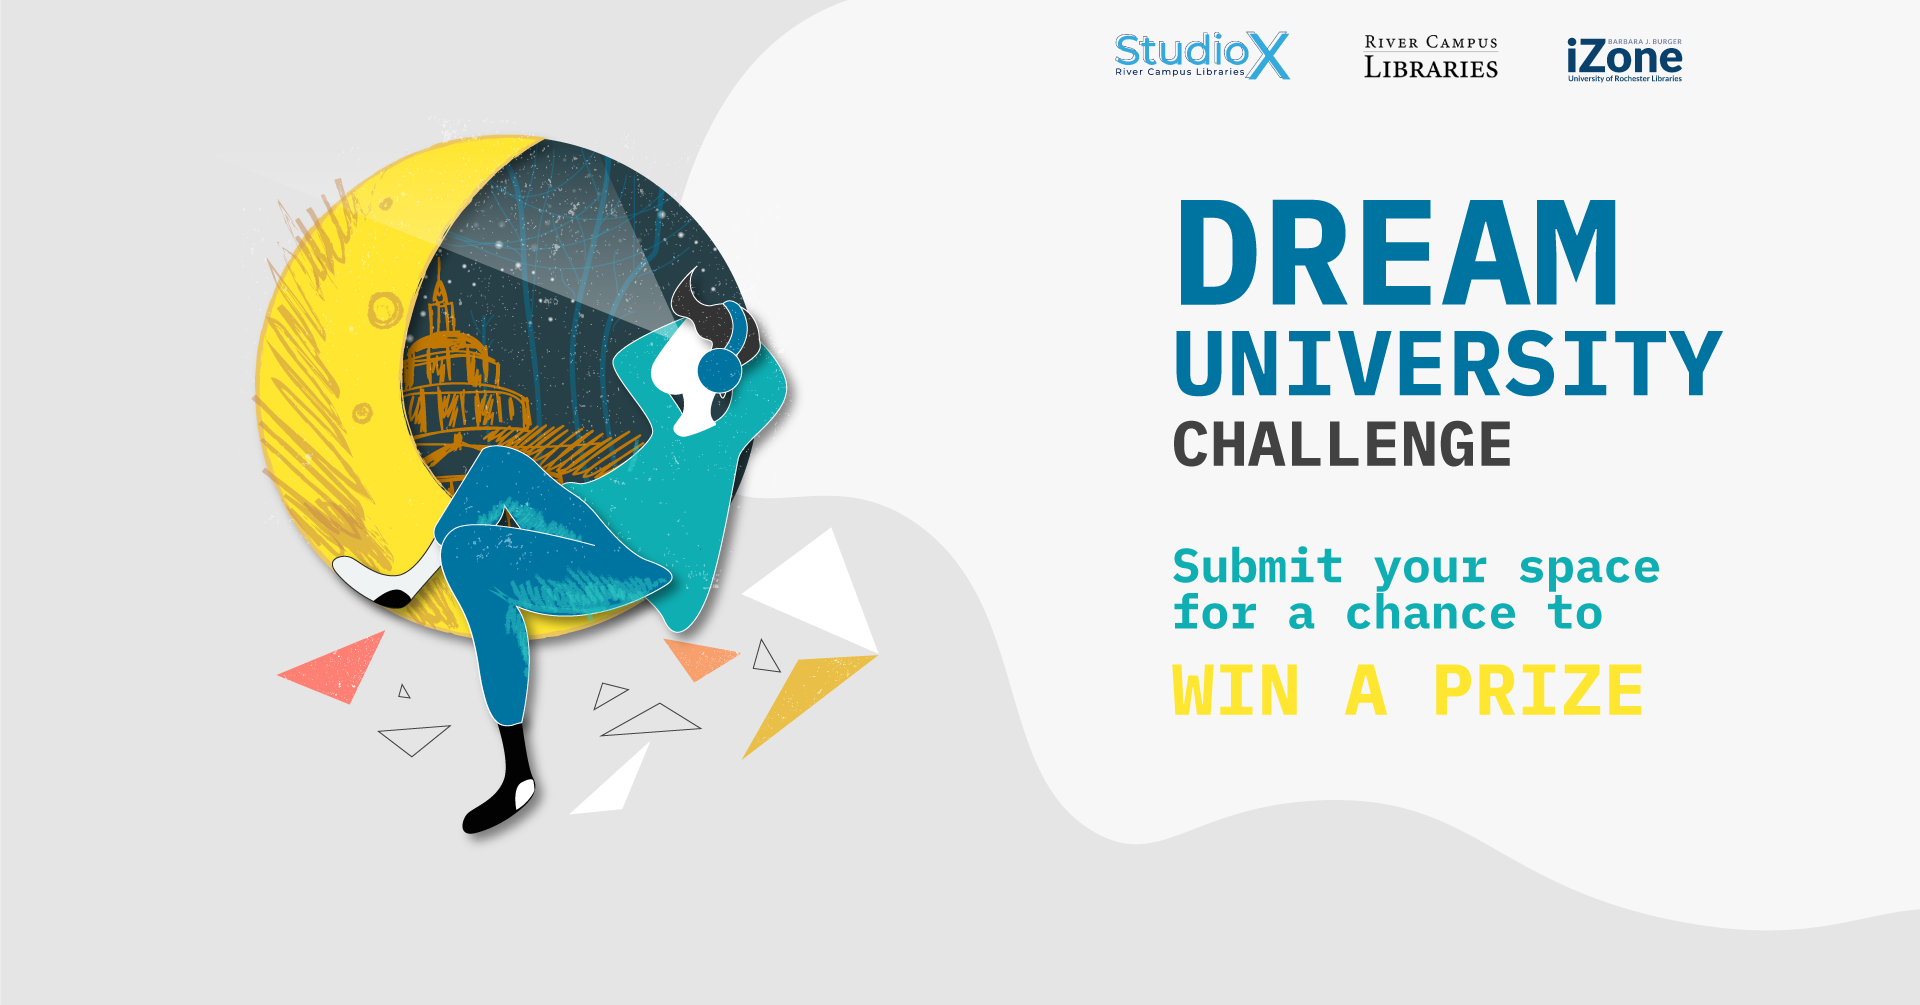 "promotional banner for the Dream University Challenge. There is a design on the left of a person reclining on a half moon and looking into the sky. The person is wearing headphones, and there is a sketch of Rush Rhees Library in the background. On the right at the top are the Studio X, River Campus Libraries, and iZone wordmarks. Underneath is the text, ""Dream University Challenge. Submit your space for a chance to win a prize."""